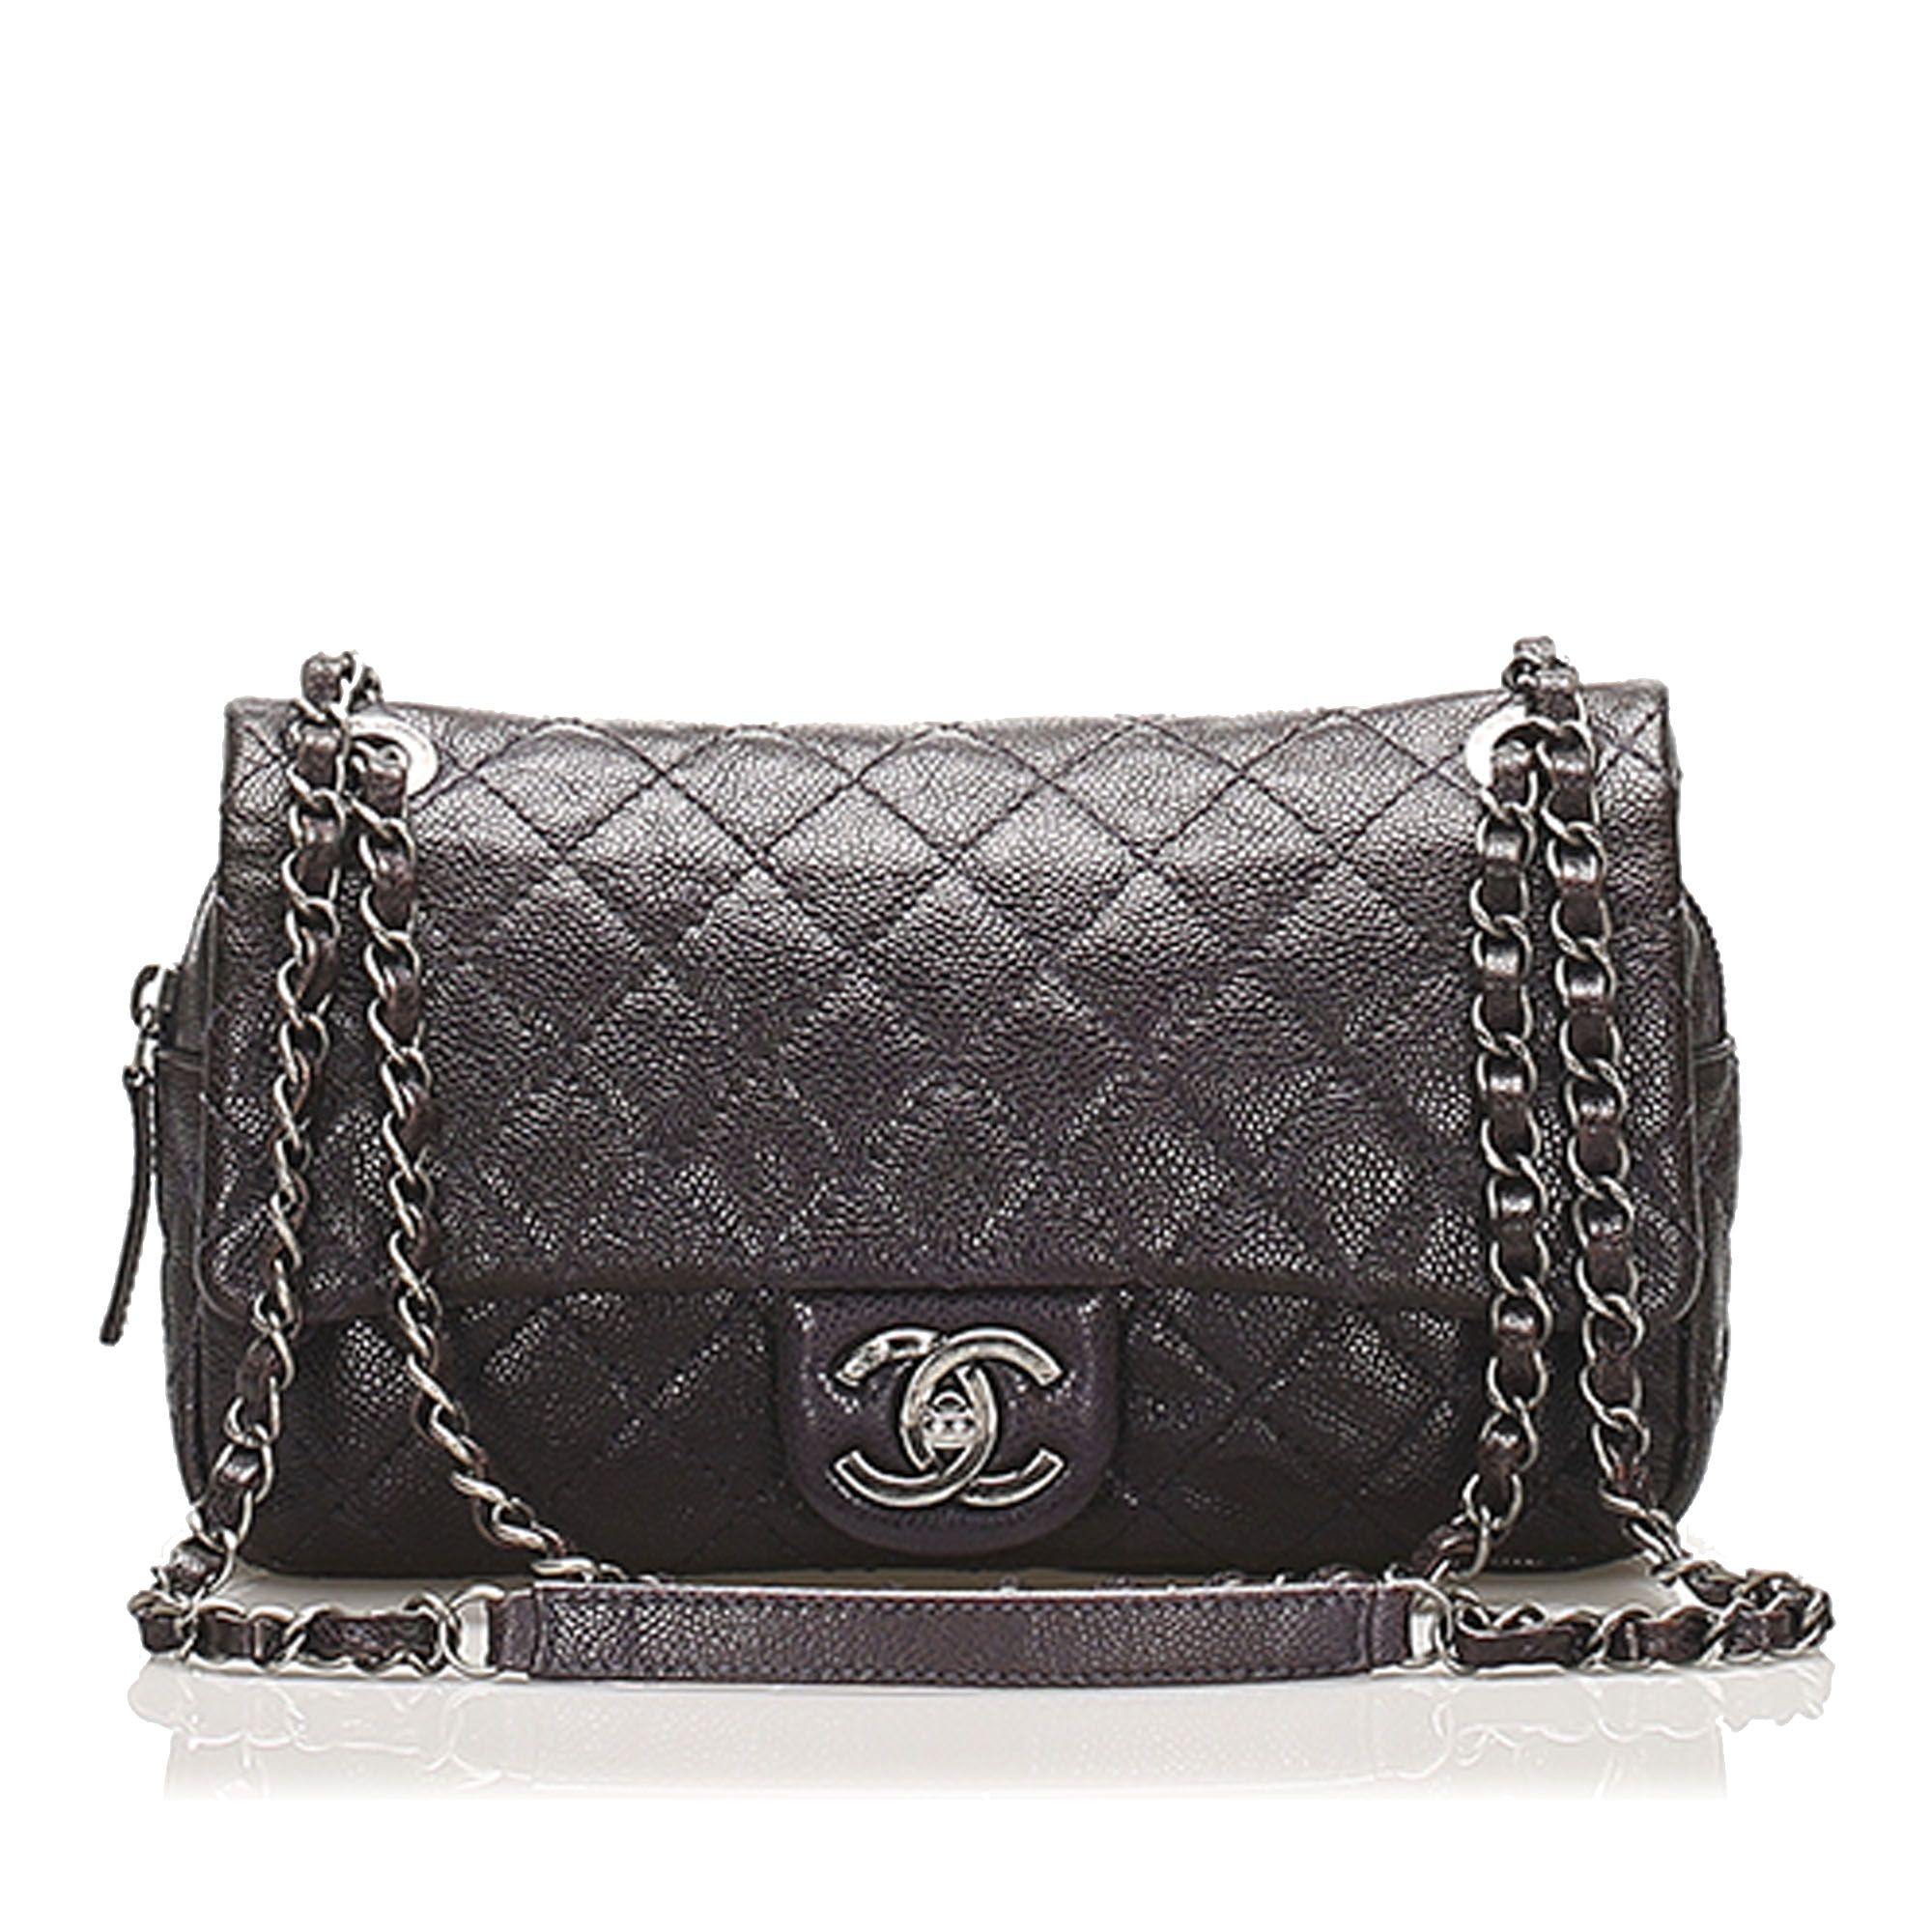 Vintage Chanel Small Classic Caviar Leather Double Flap Bag Black